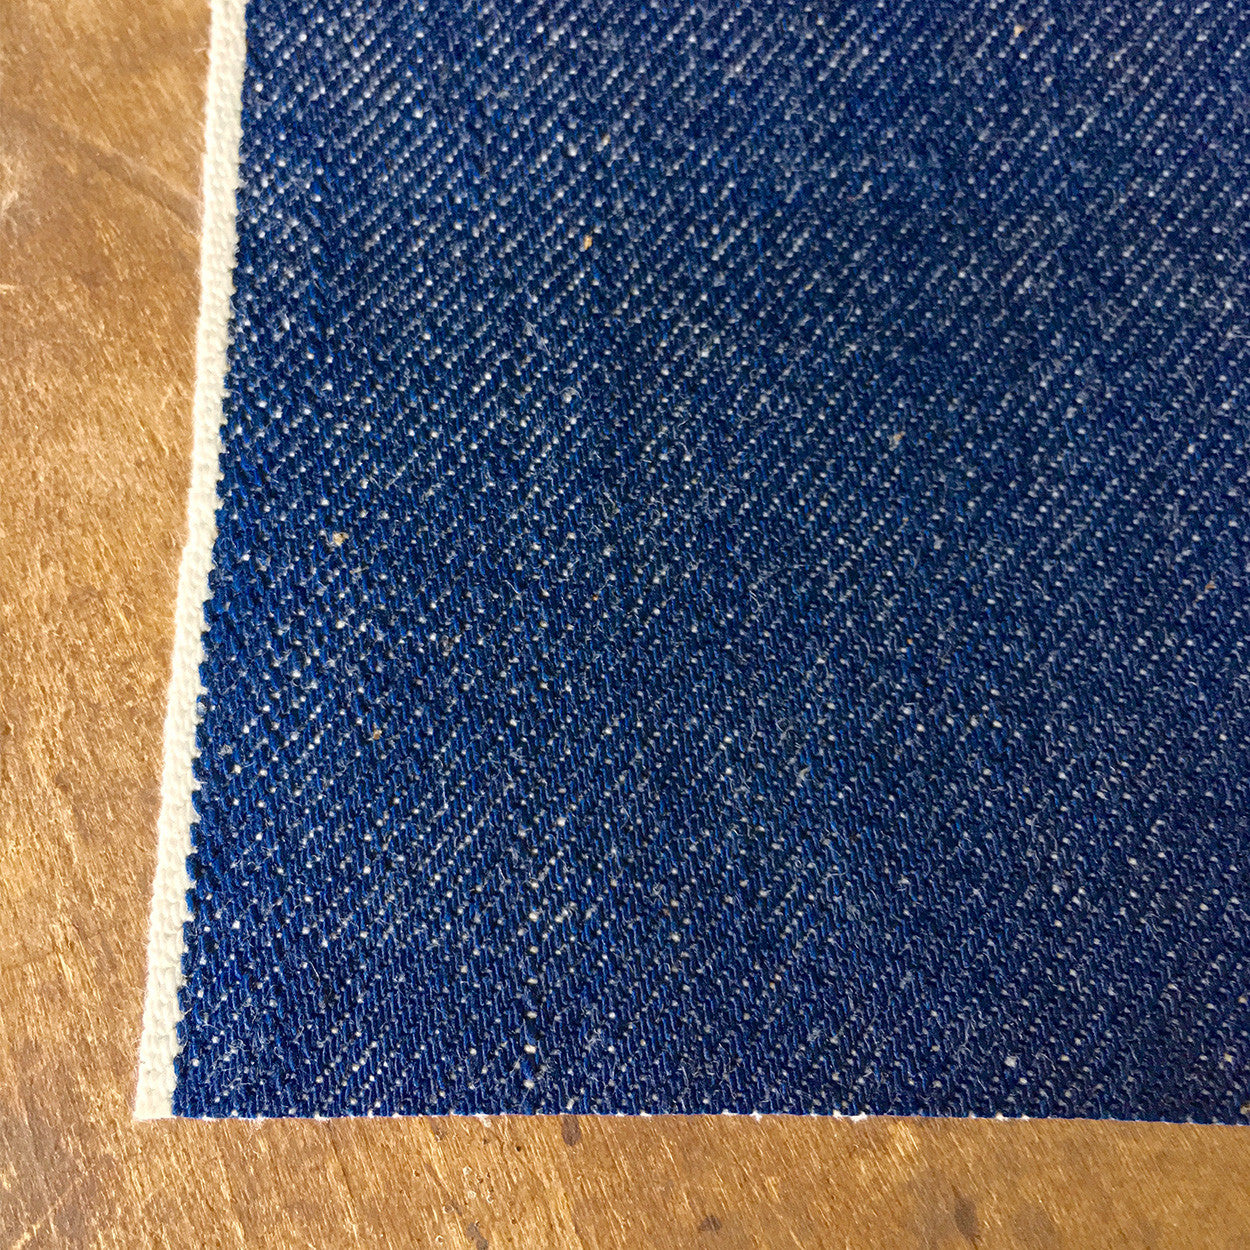 Style W005 : 15.25 oz Natural Indigo Selvage